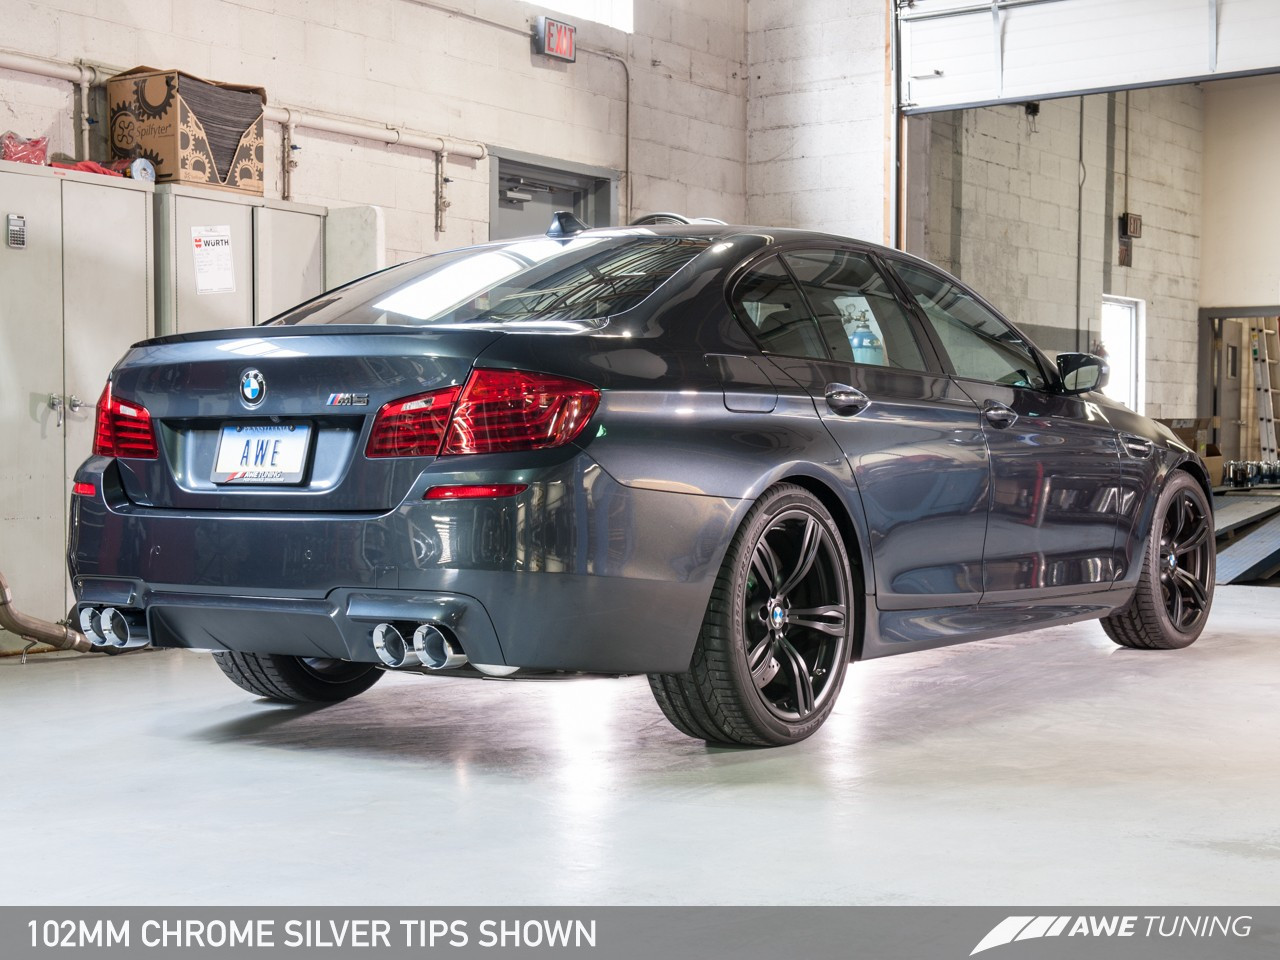 AWE Tuning Touring Edition Axle Back Exhaust for BMW F10 M5, Chrome Silver Tips